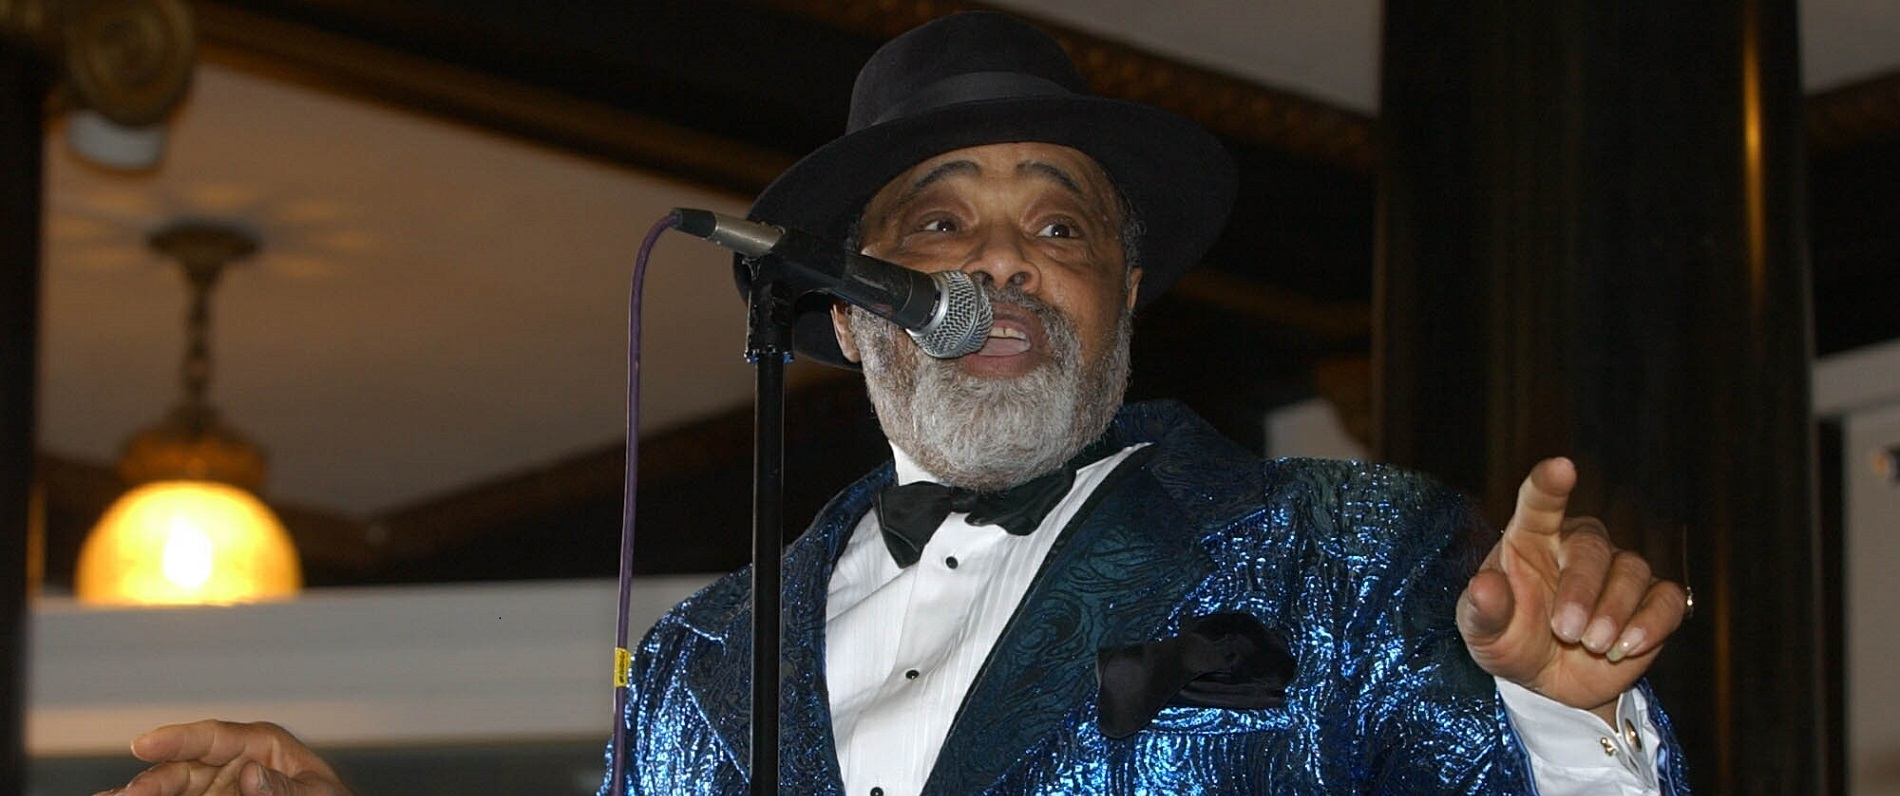 The venerable Lance Diamond performed at the Buffalo History Museum for the 2003 First Night Buffalo celebration, when it was still a multi-venue event. (Harry Scull Jr./News file photo)